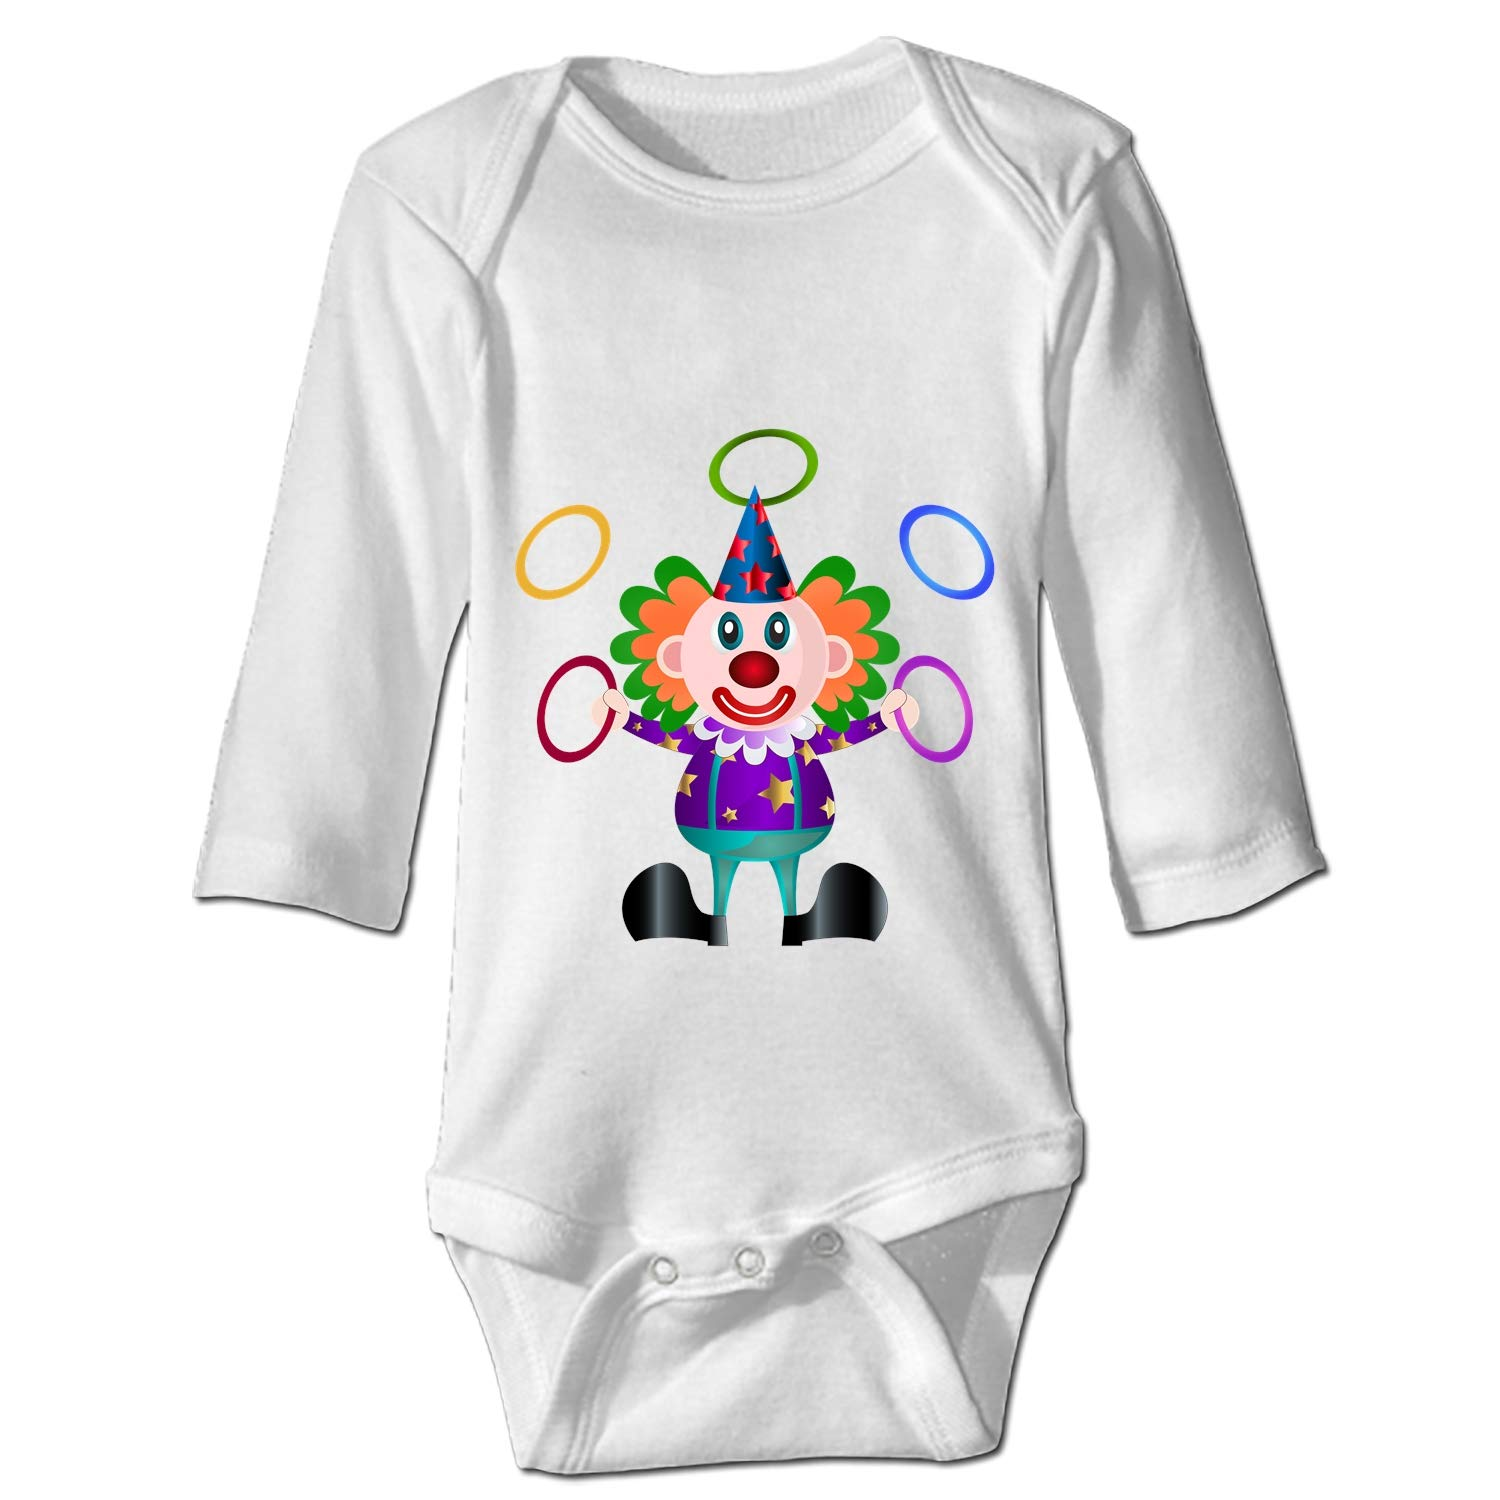 XASFF Funny Chinchilla Bodysuit for Baby Long-Sleeve Infant Onesies